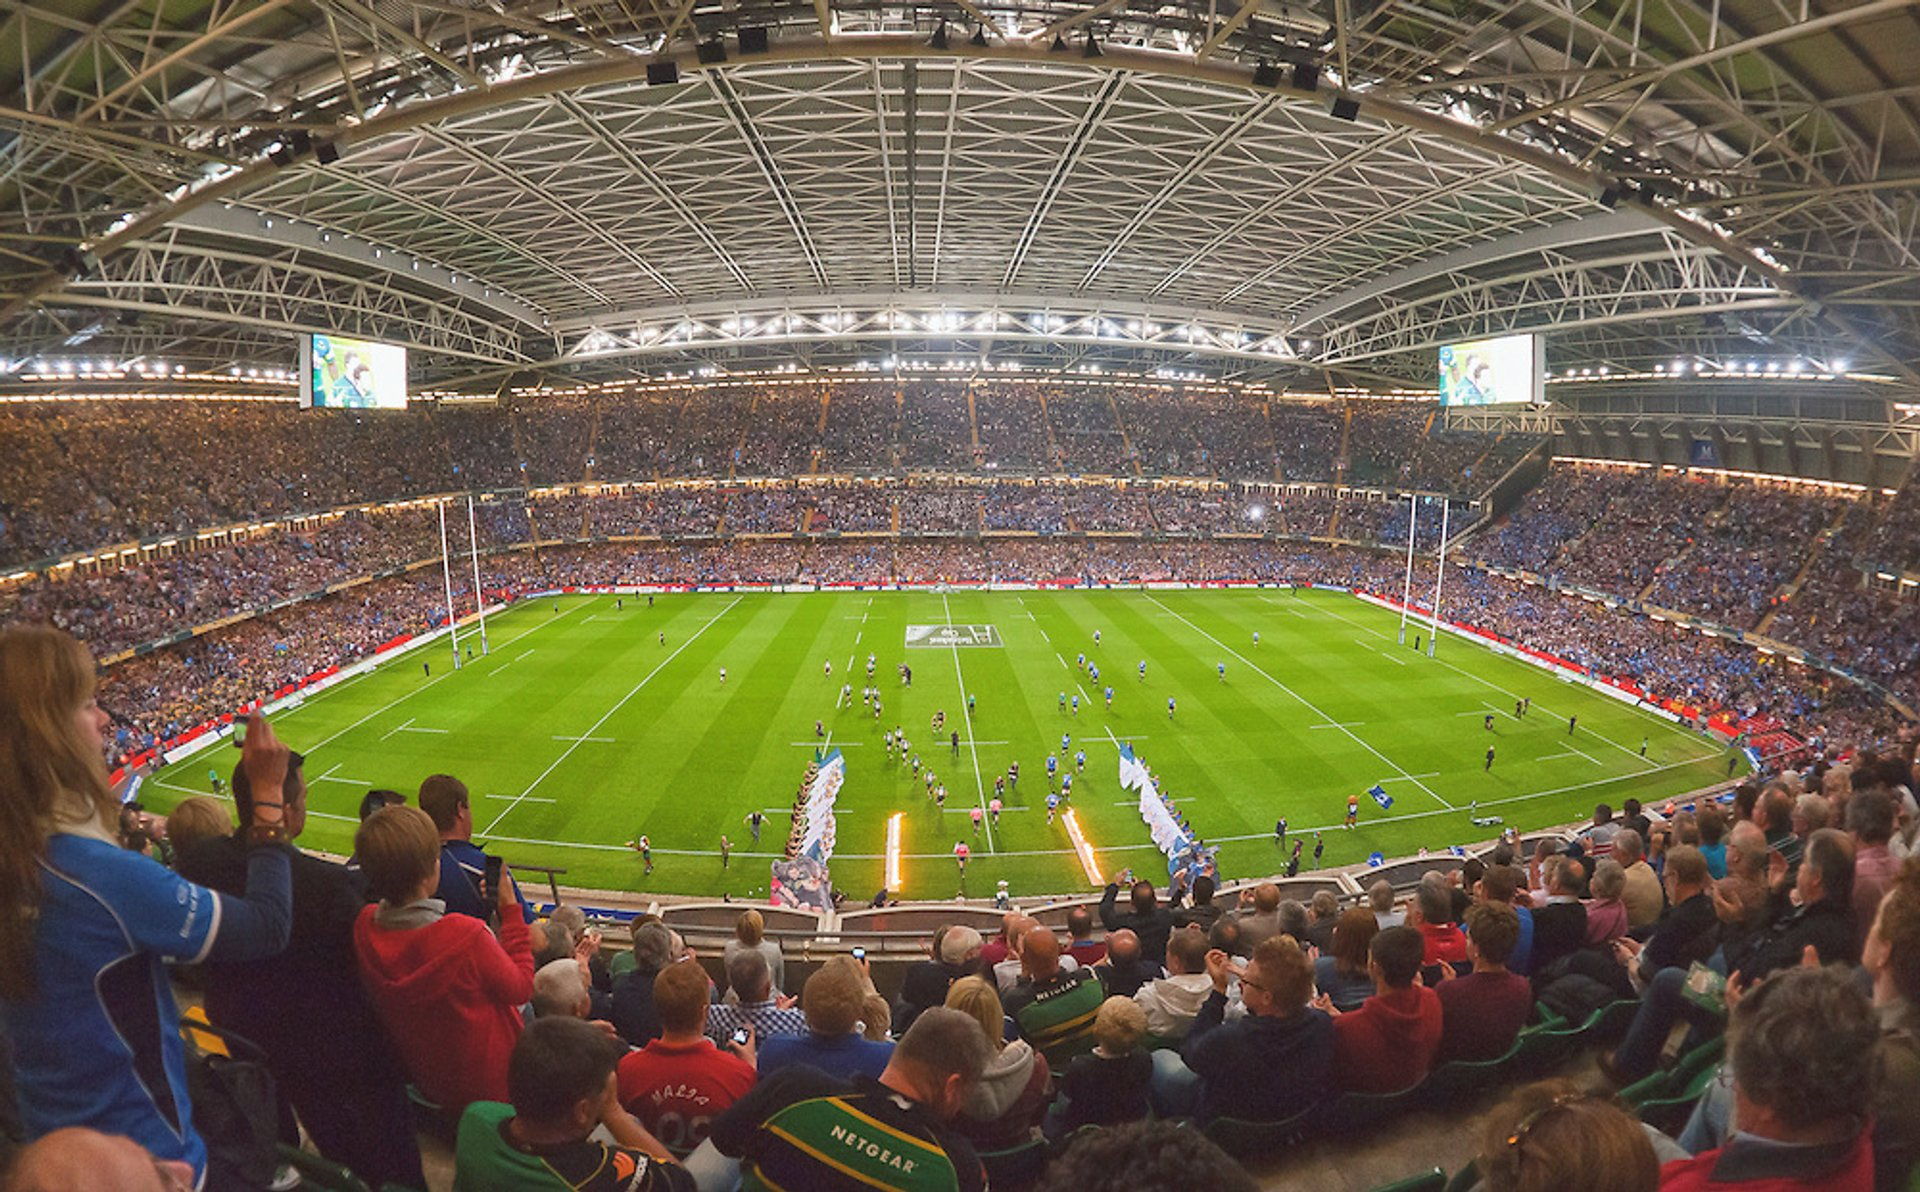 Rugby Season in Wales 2020 - Best Time